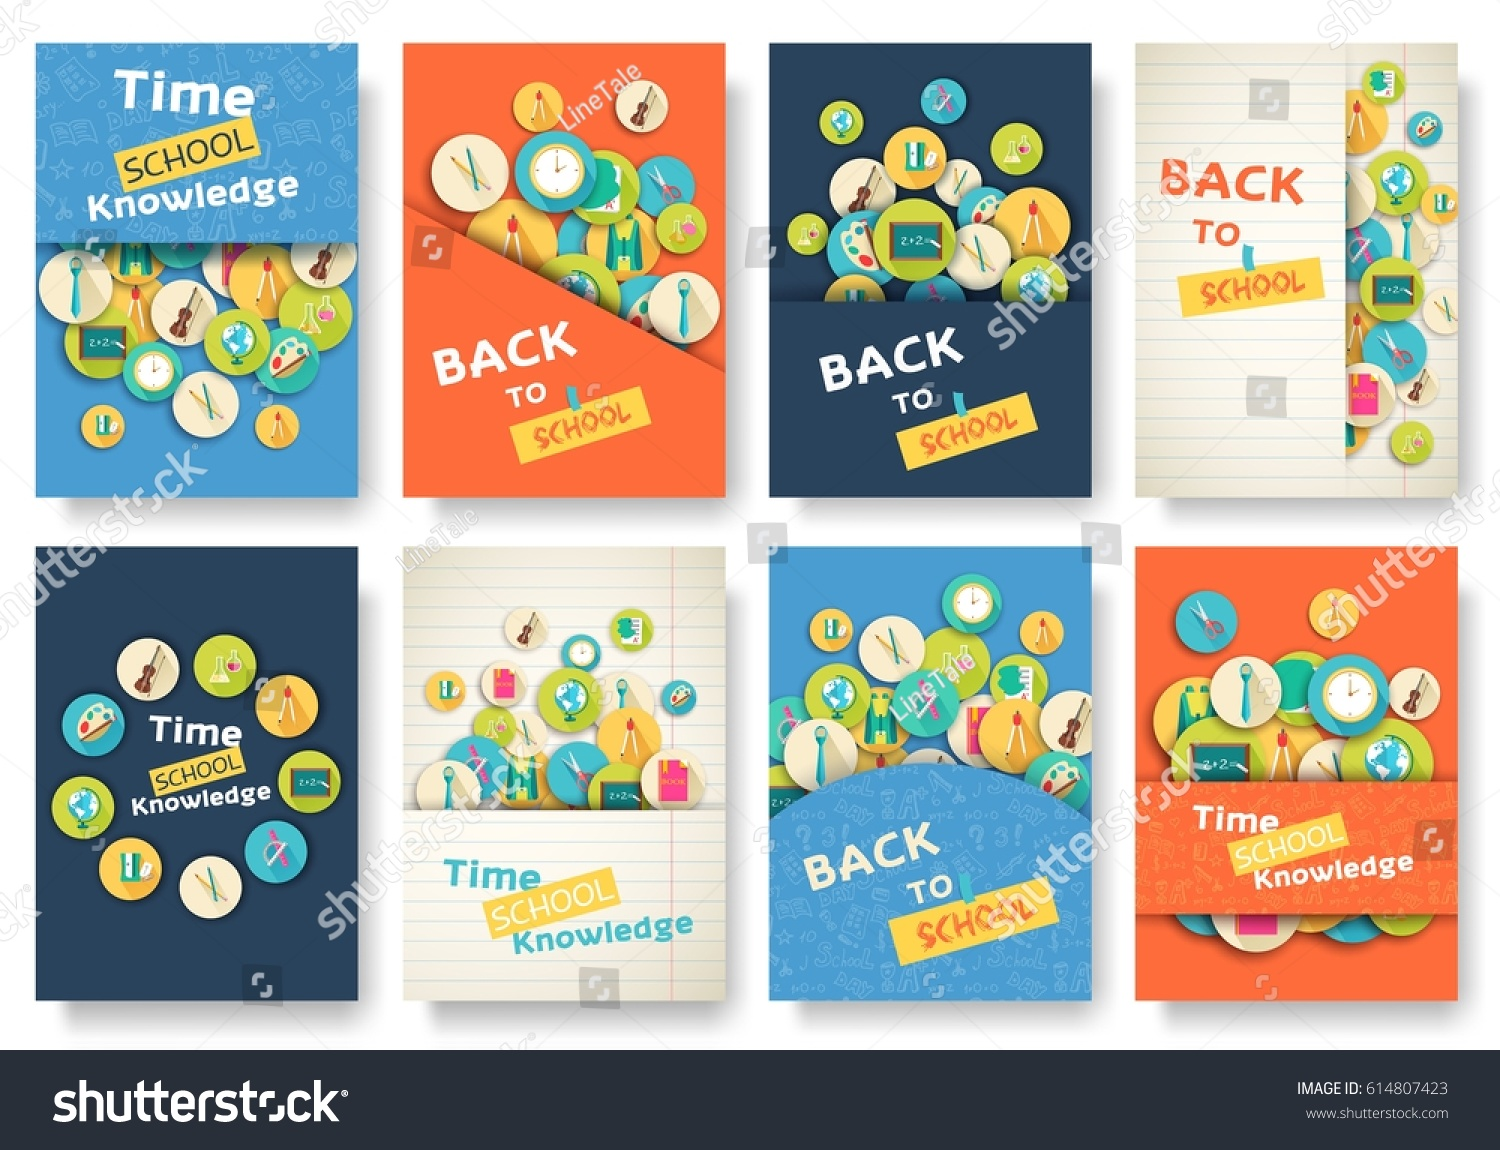 Back school information pages set education stock vector 614807423 back school information pages set education stock vector 614807423 shutterstock pronofoot35fo Images